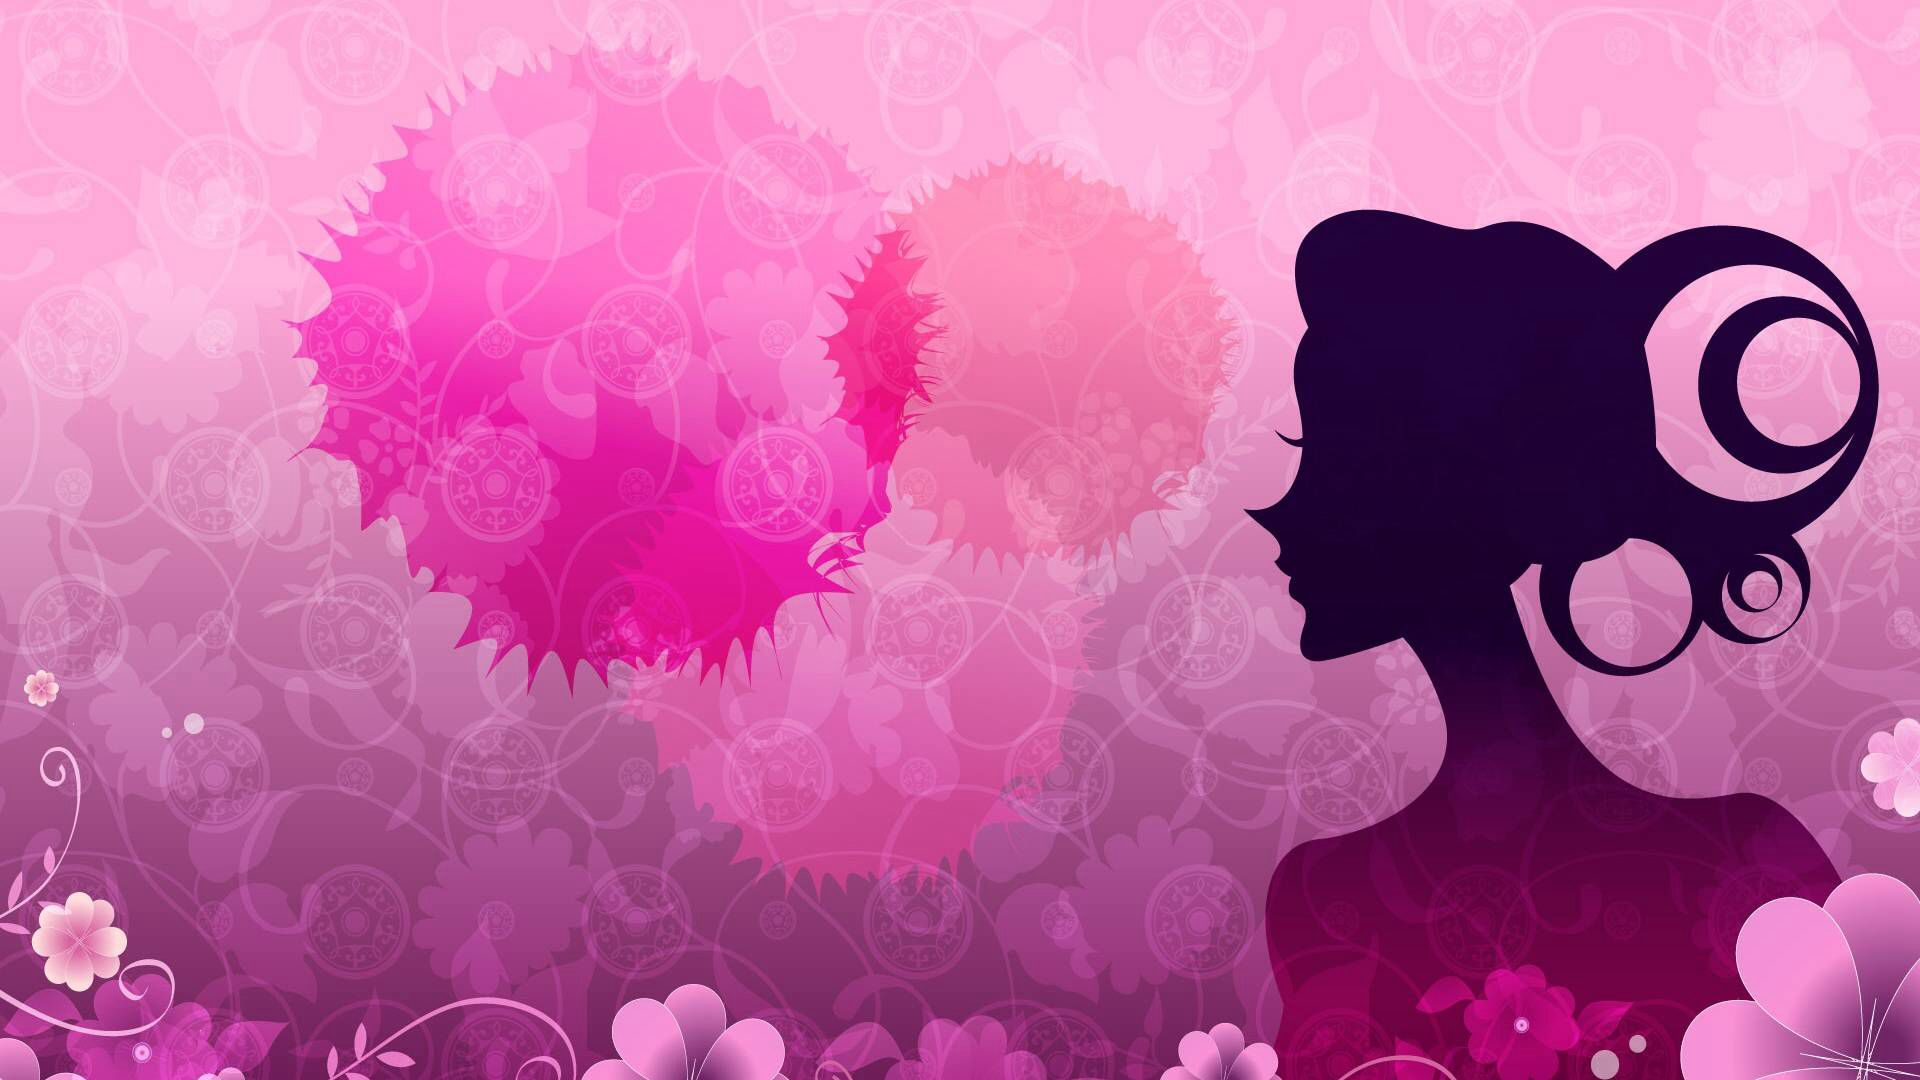 Wallpaper download girly - Download Girly Wallpapers App At Http Bit Ly 1nmvgr6